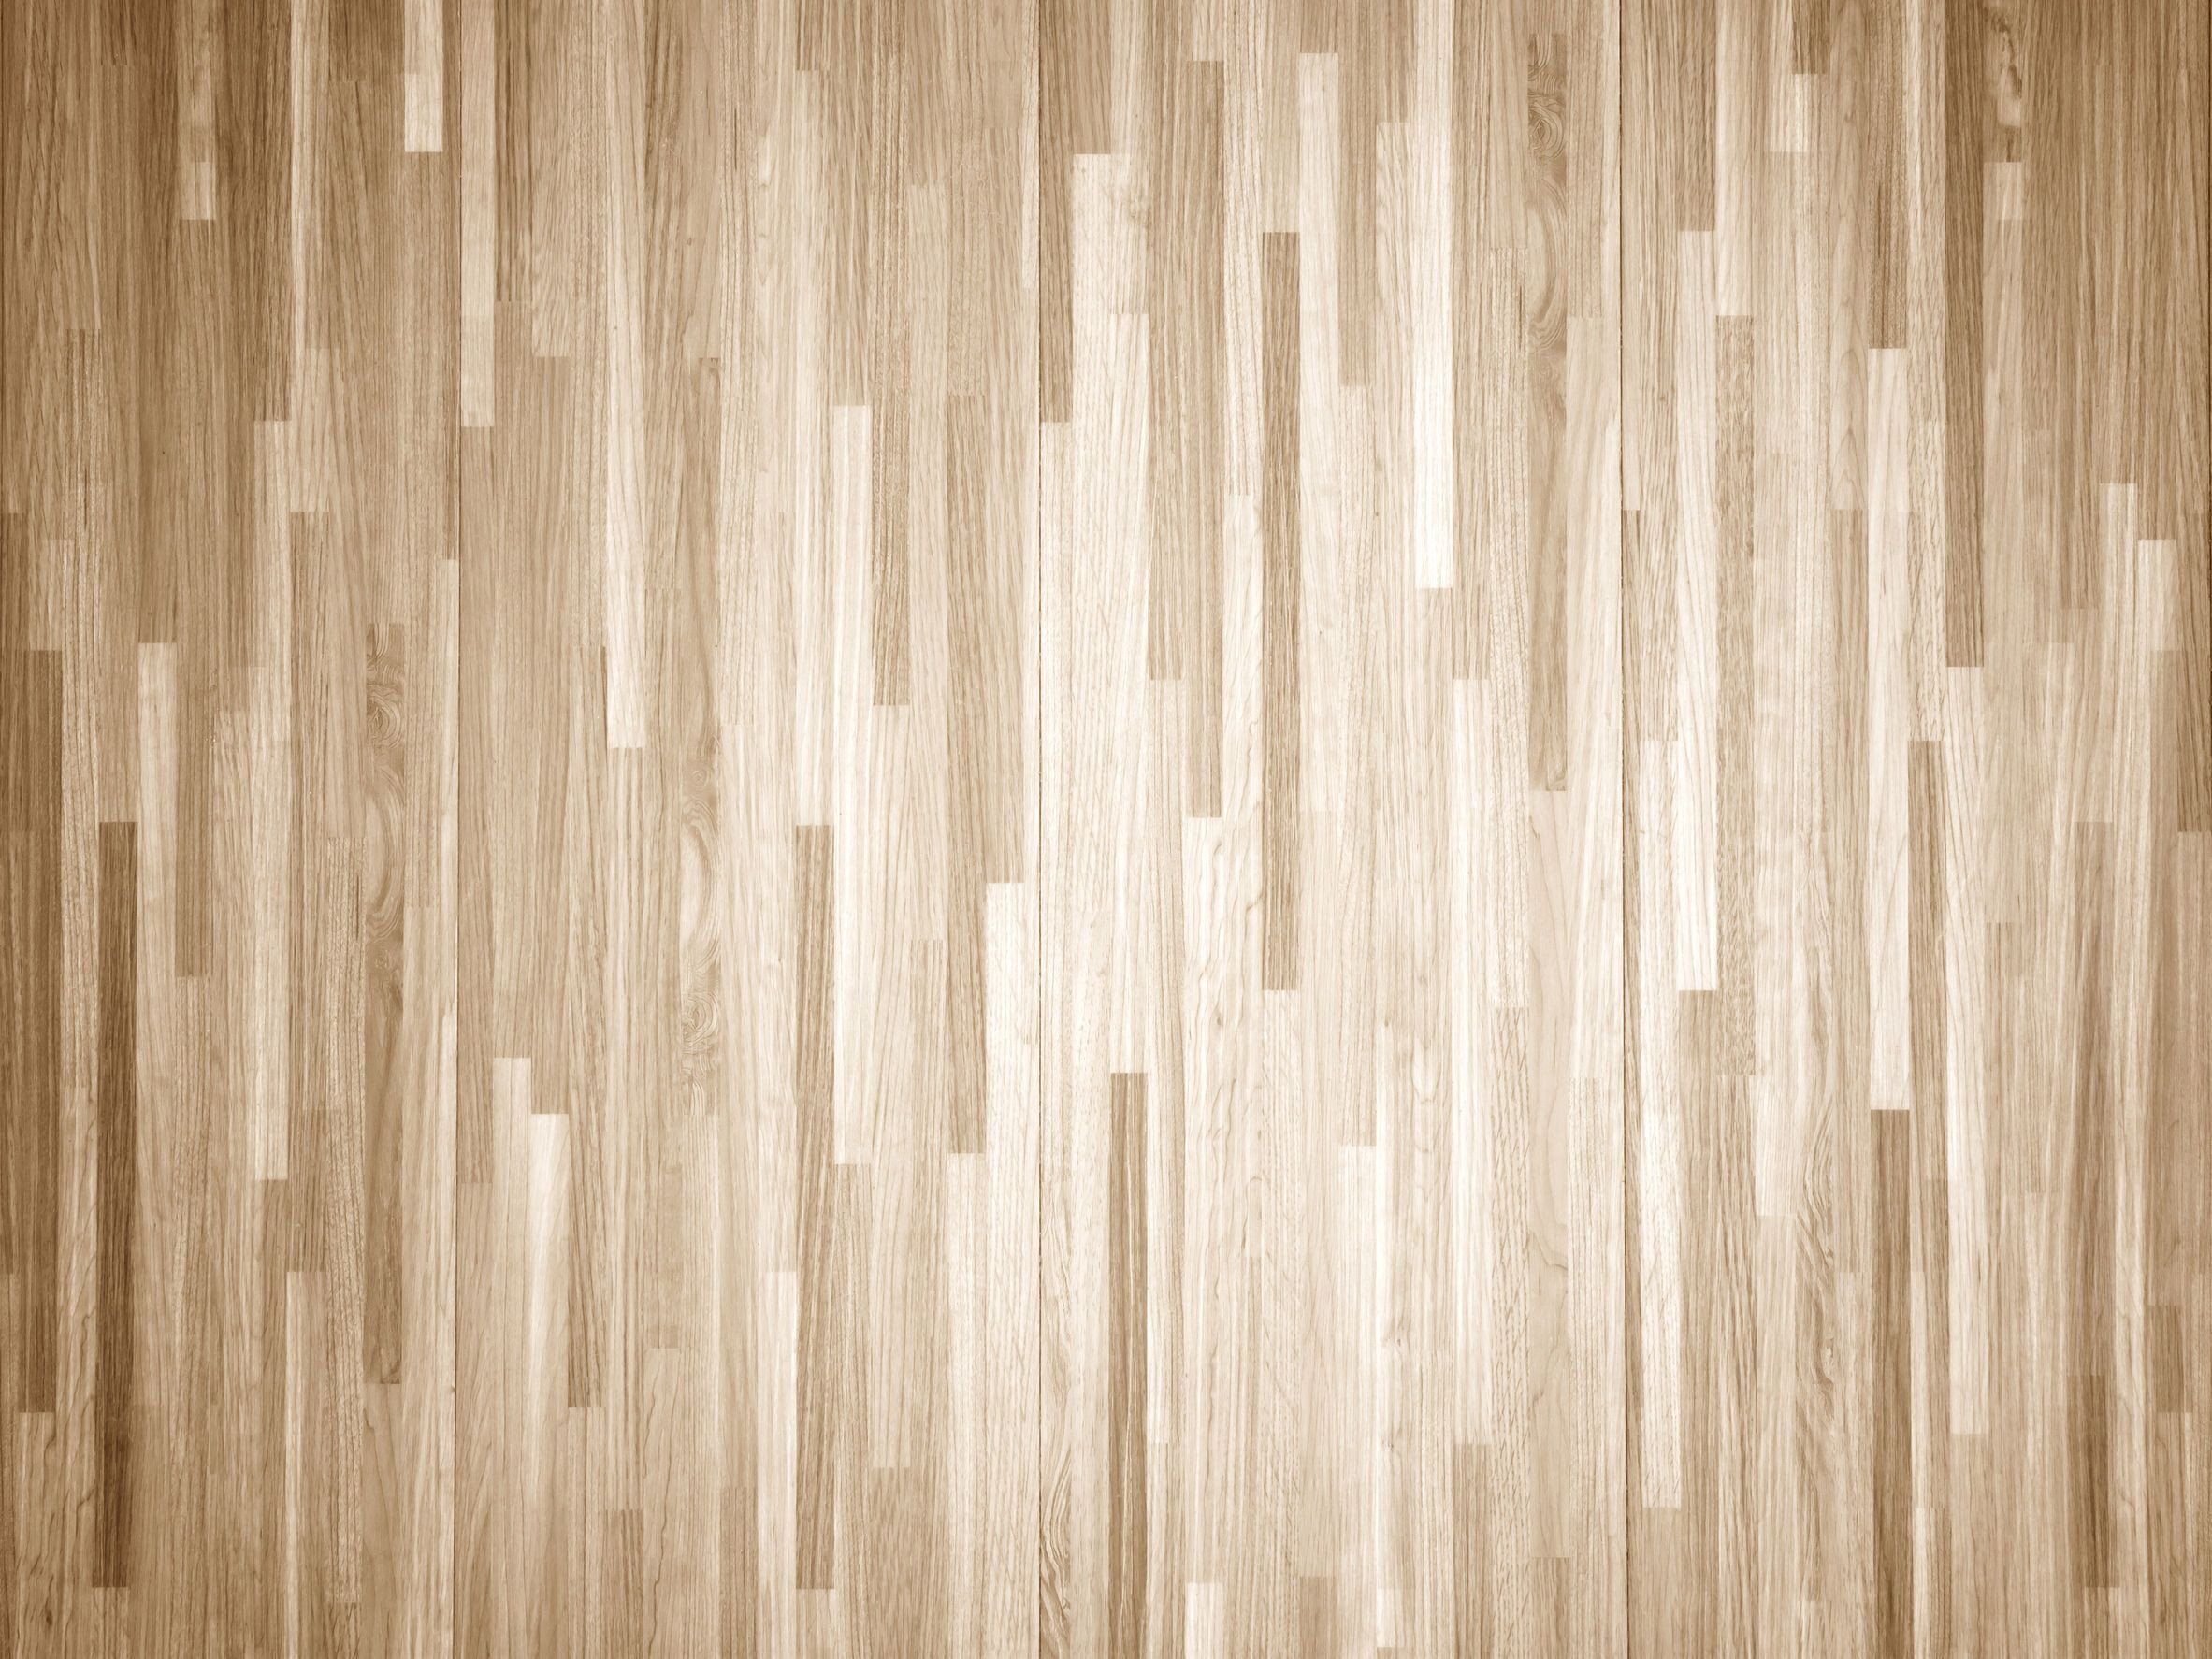 26 Spectacular Cleaning Hand Scraped Hardwood Floors 2021 free download cleaning hand scraped hardwood floors of how to chemically strip wood floors woodfloordoctor com in you